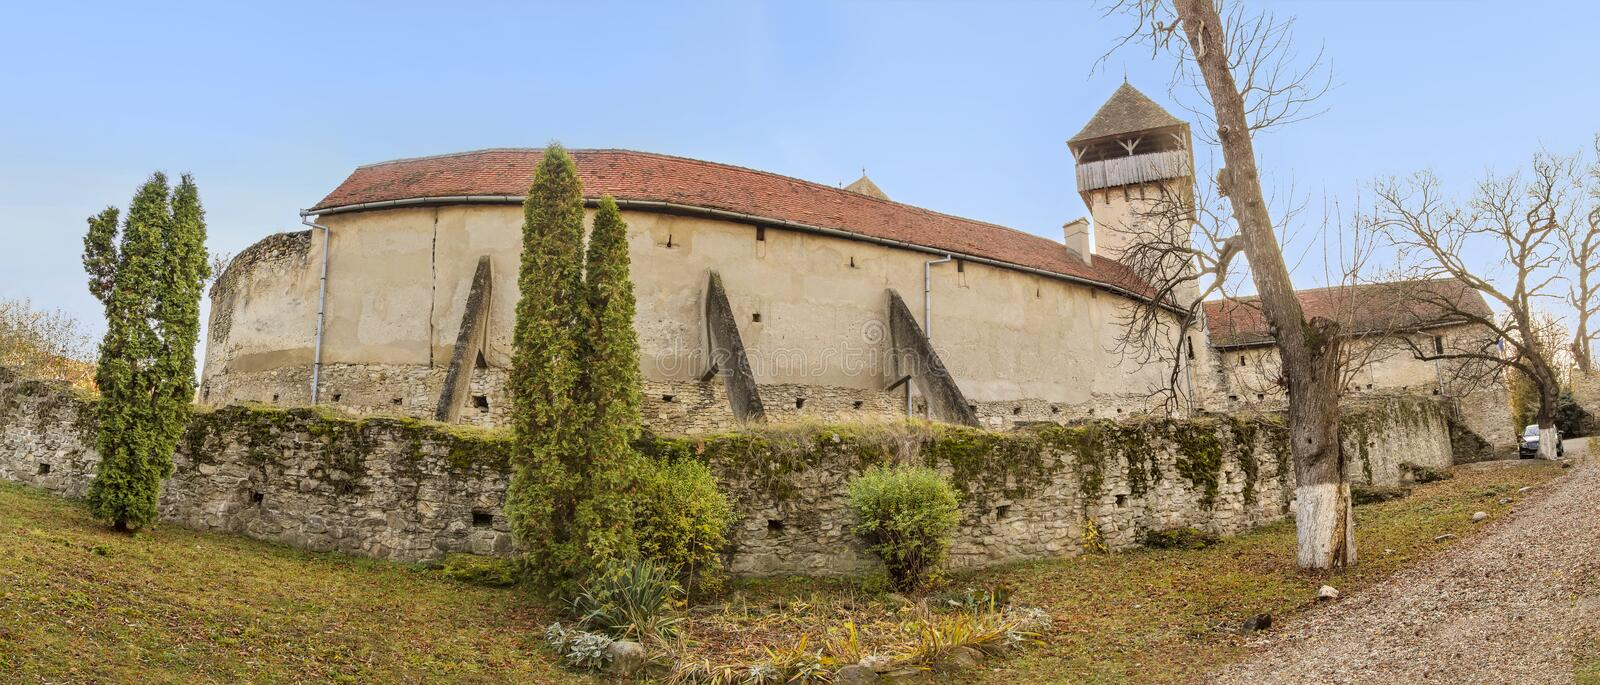 Calnic Medieval Fortress in Romania. Calnic Medieval Fortress in Transylvania, Alba, Romania, a tourist attraction listed on UNESCO`s World Heritage Sites royalty free stock images